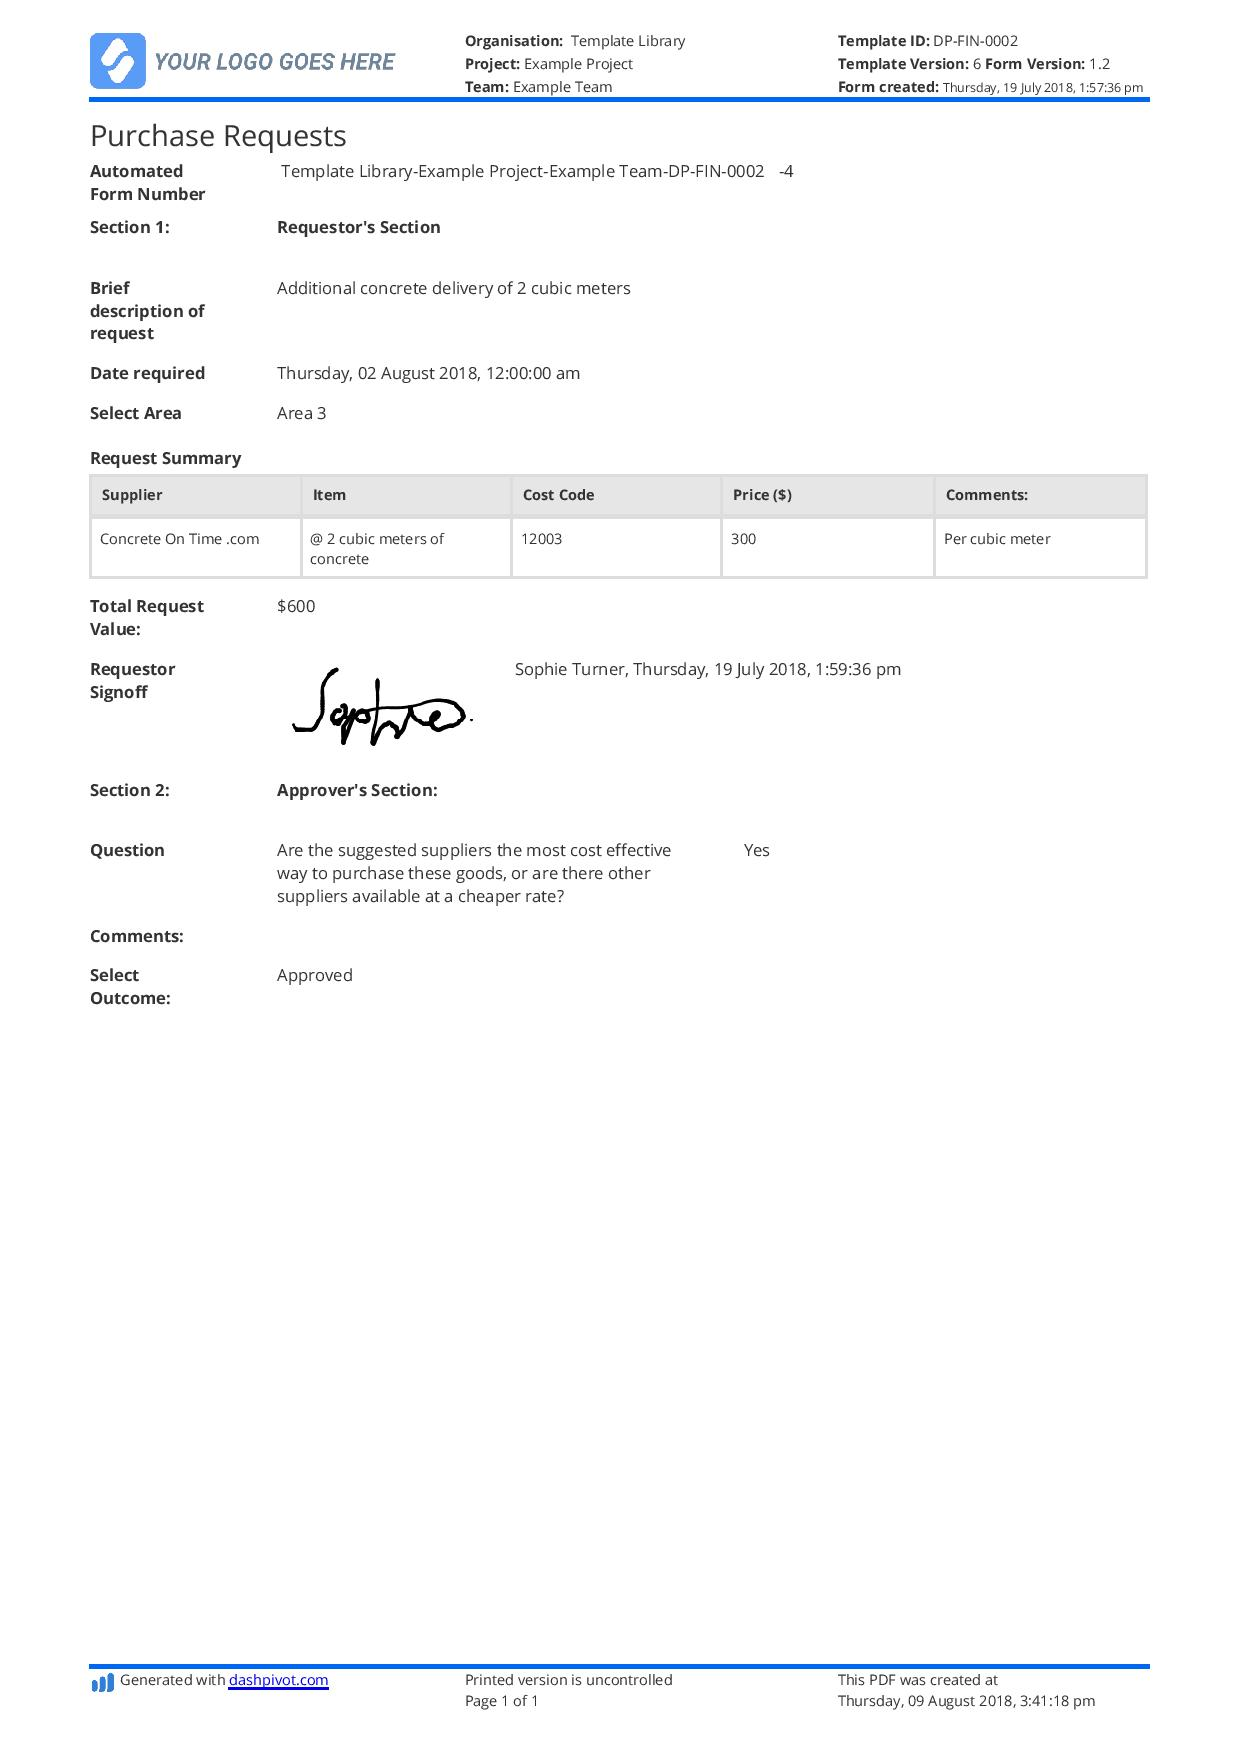 Purchase Request Form template: Use this purchase request template free